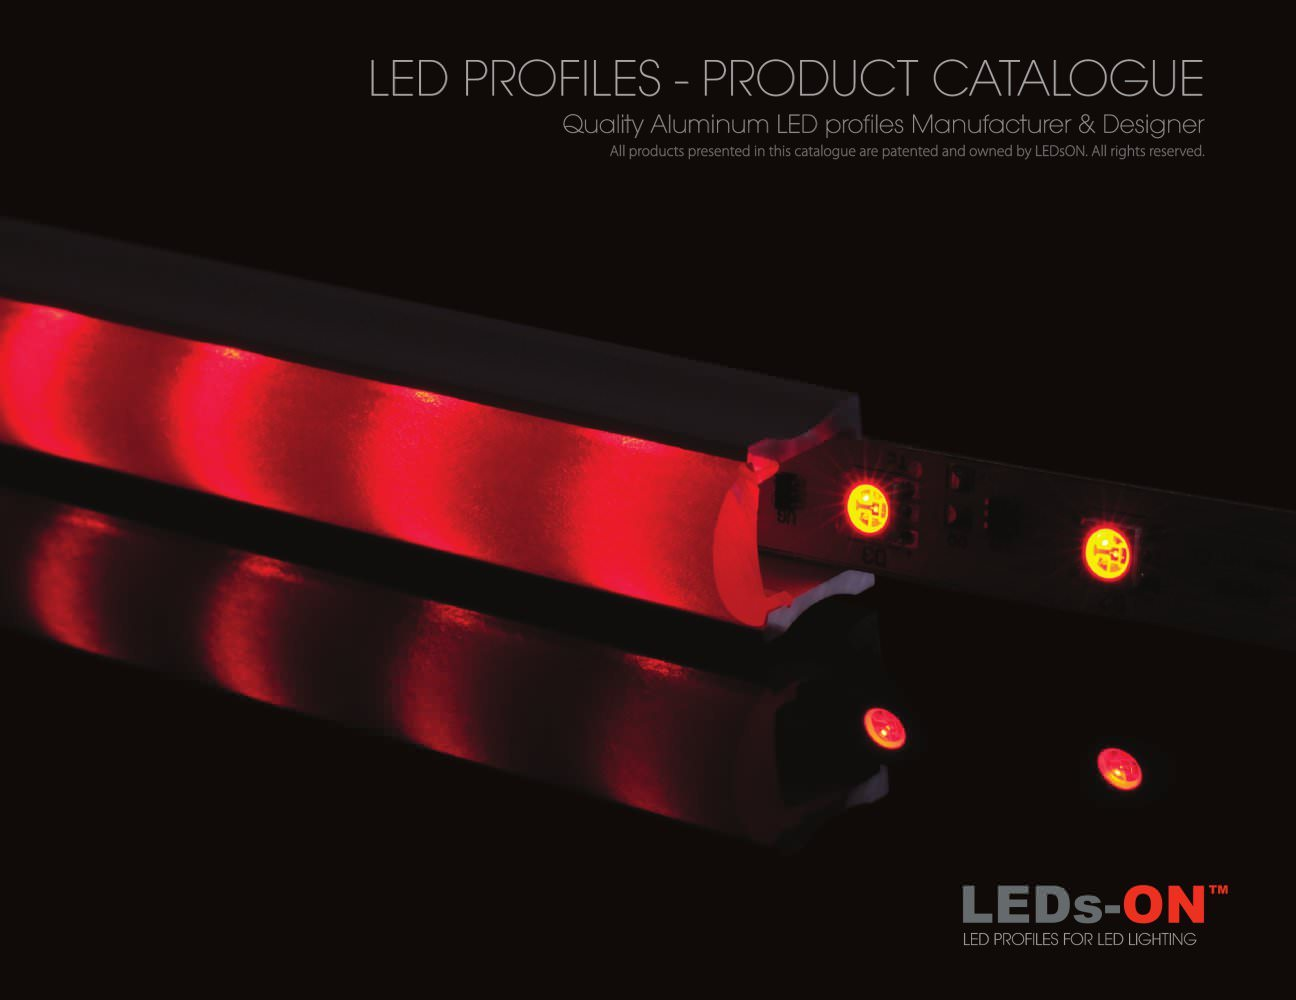 led-profiles-product-catalogue-87044_1b